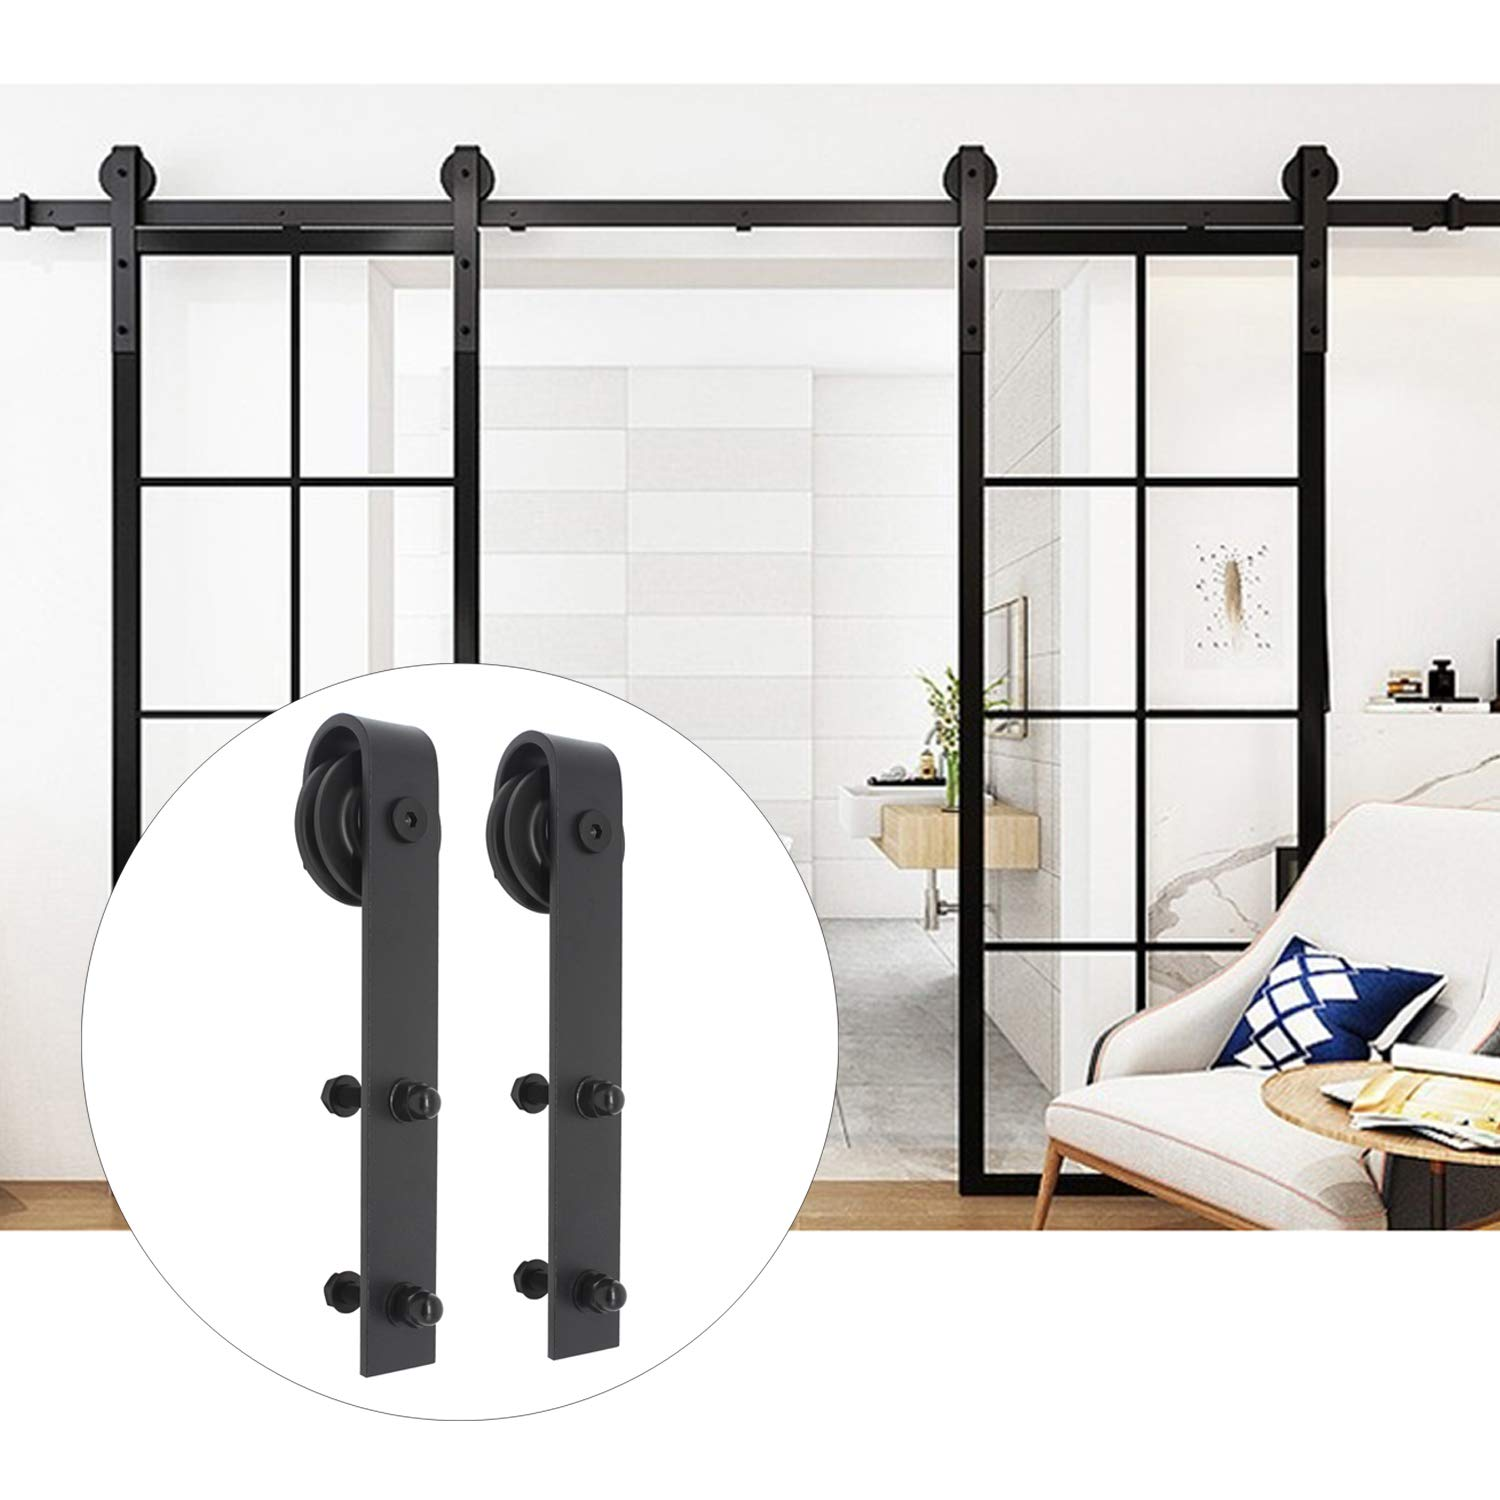 16 Feet Sliding Barn Door Hardware Set Superior Quality Track Kit Antique Style (Black), Fit Up to 47'' Double Doors, with Soft Closing Damper by KNOBWELL